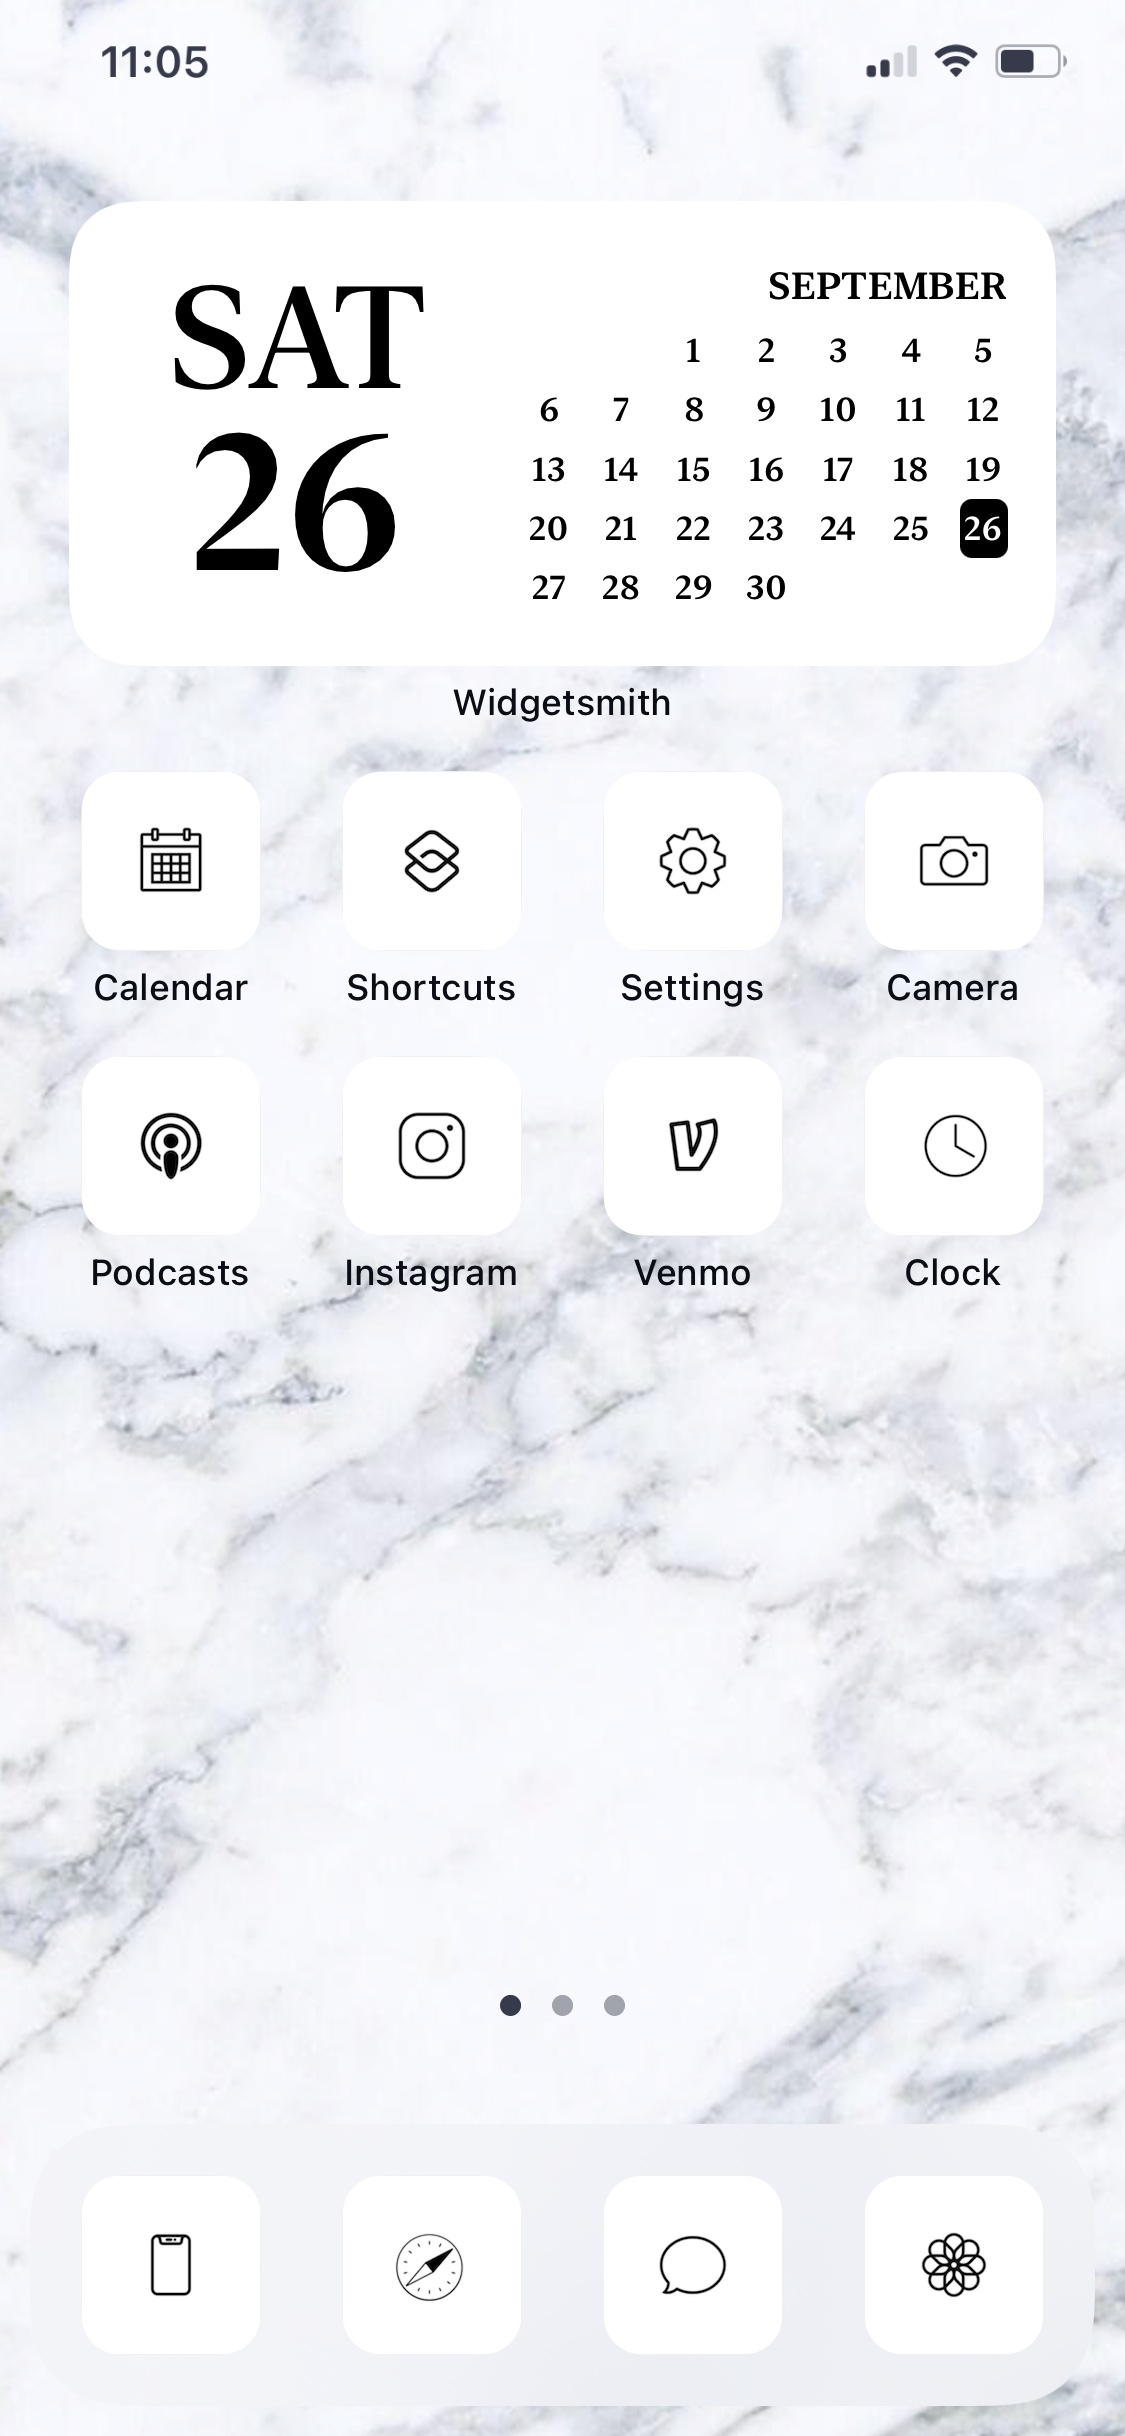 Ios 14 App Icons Minimalist Aesthetic Black White In 2020 App Icon Homescreen Iphone Home Screen Layout